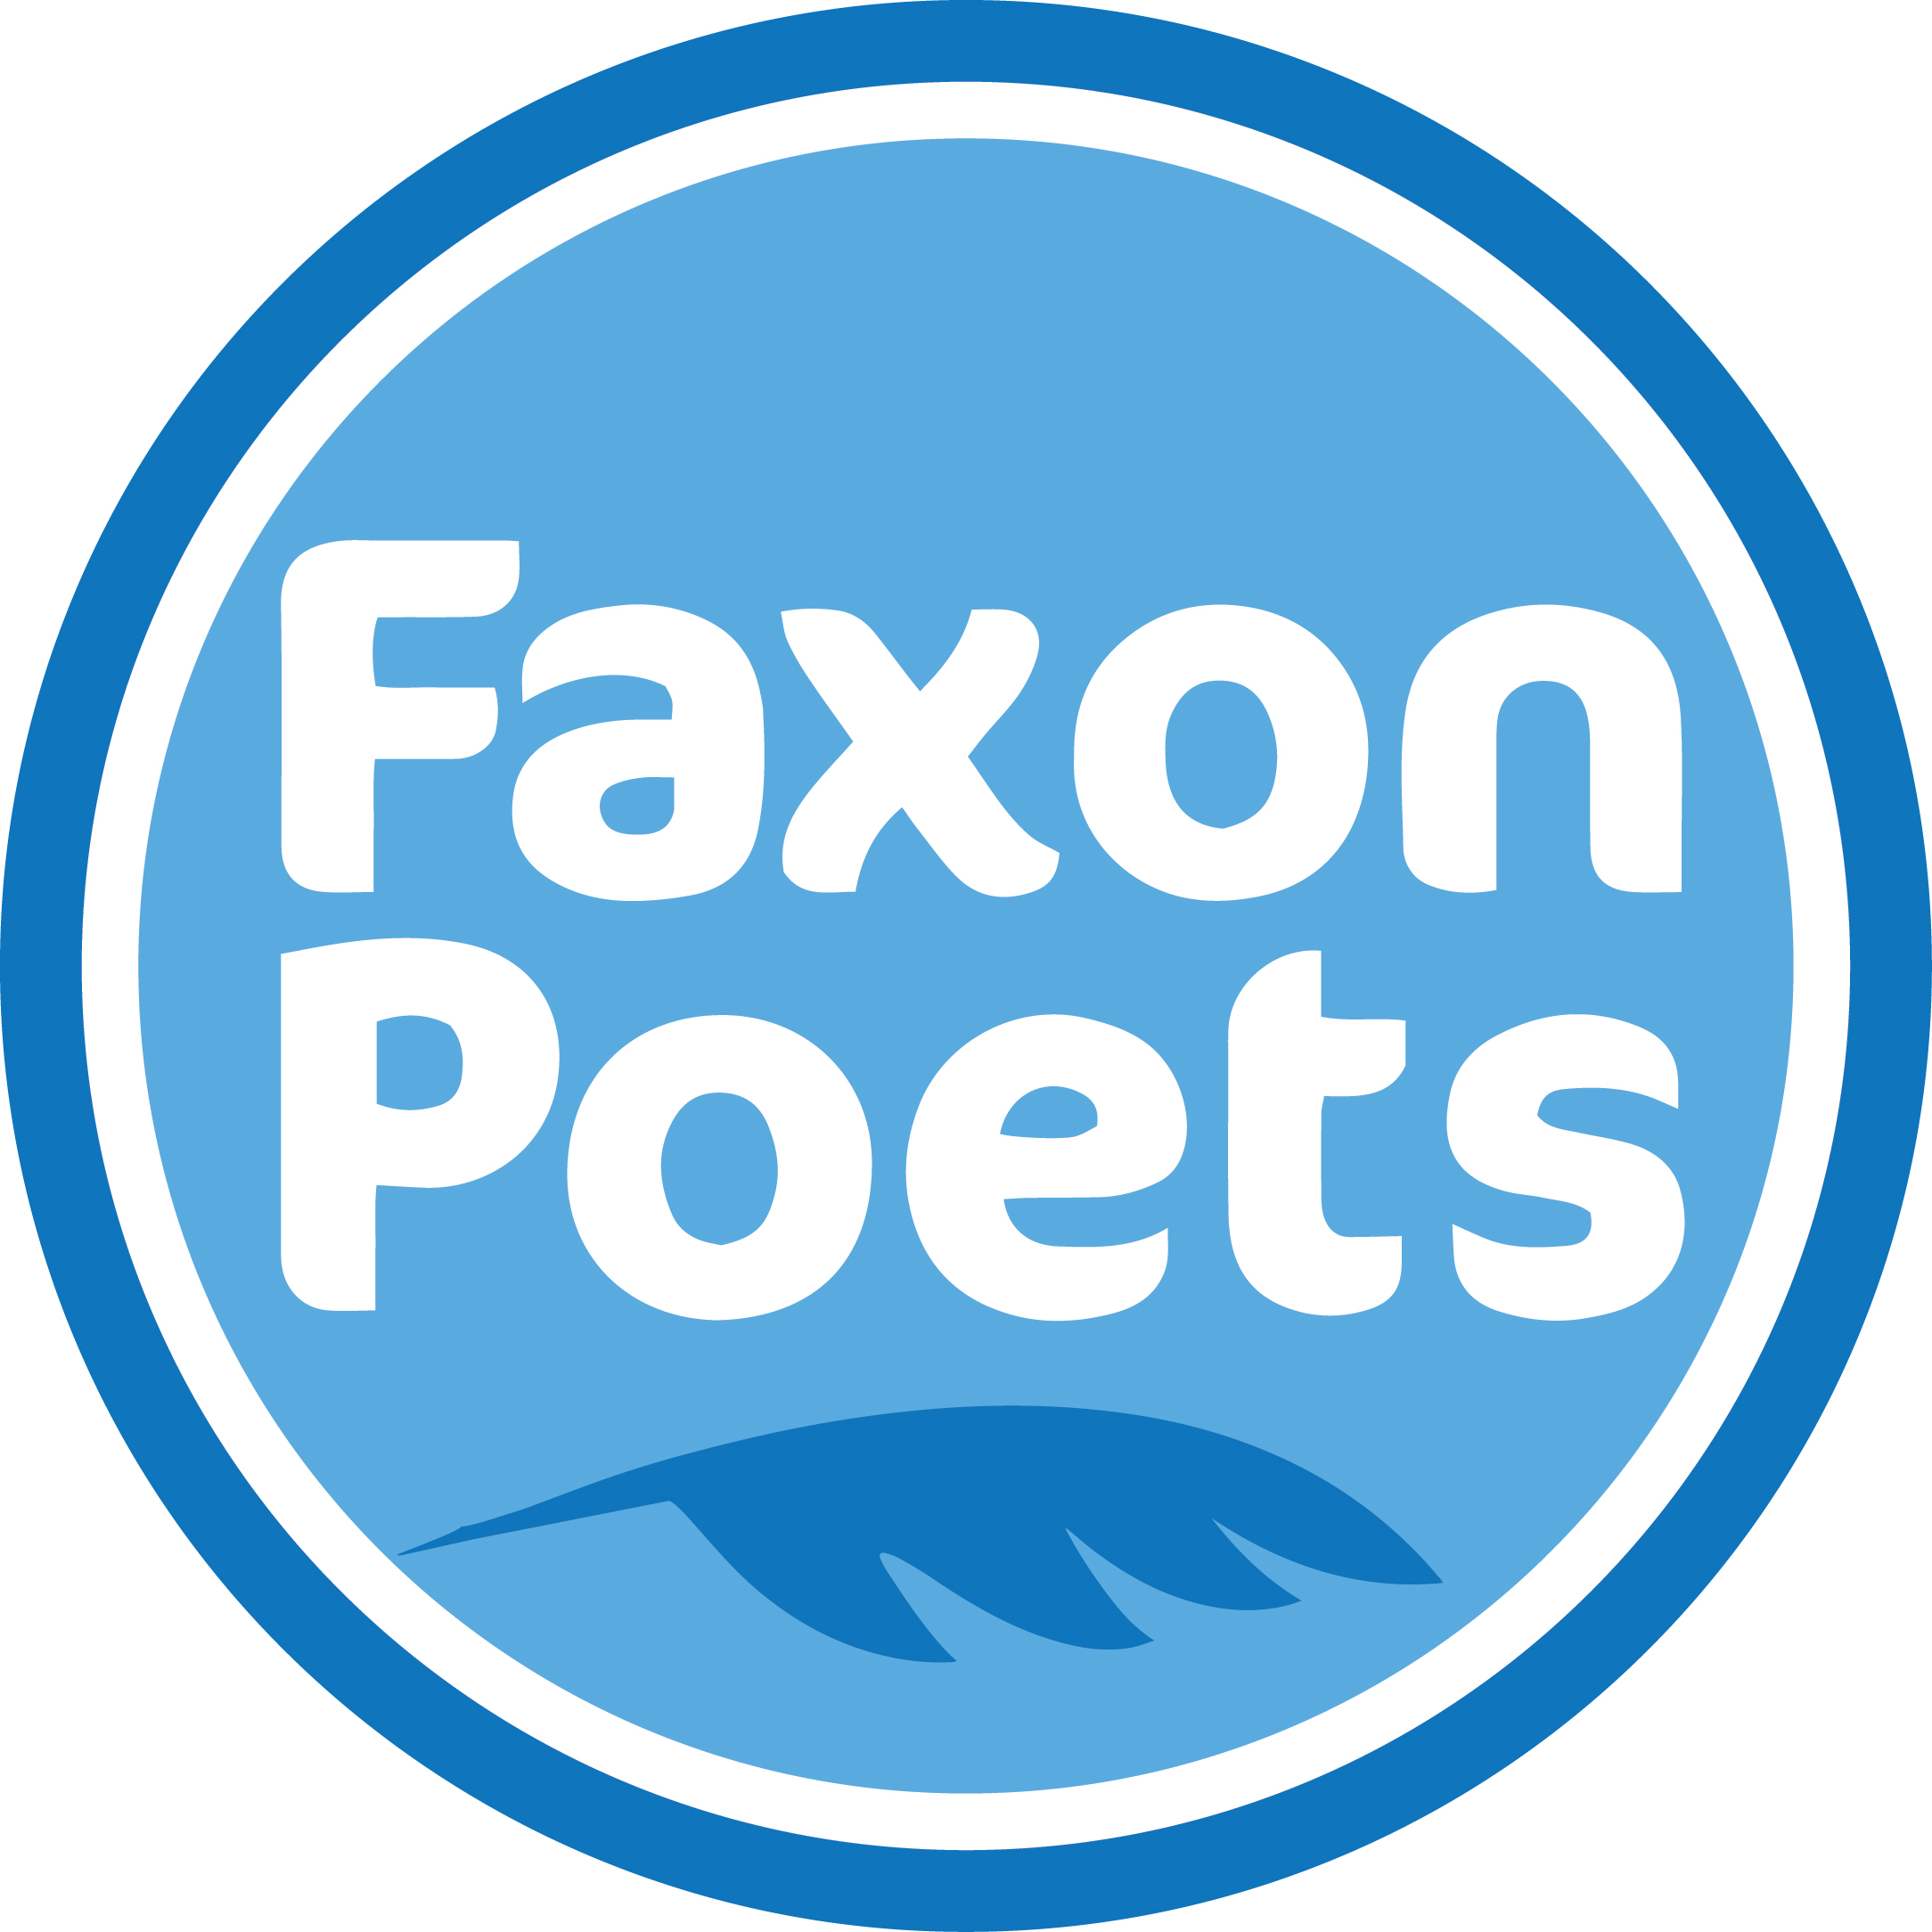 Faxon Poets Meet at the Noah Webster Library